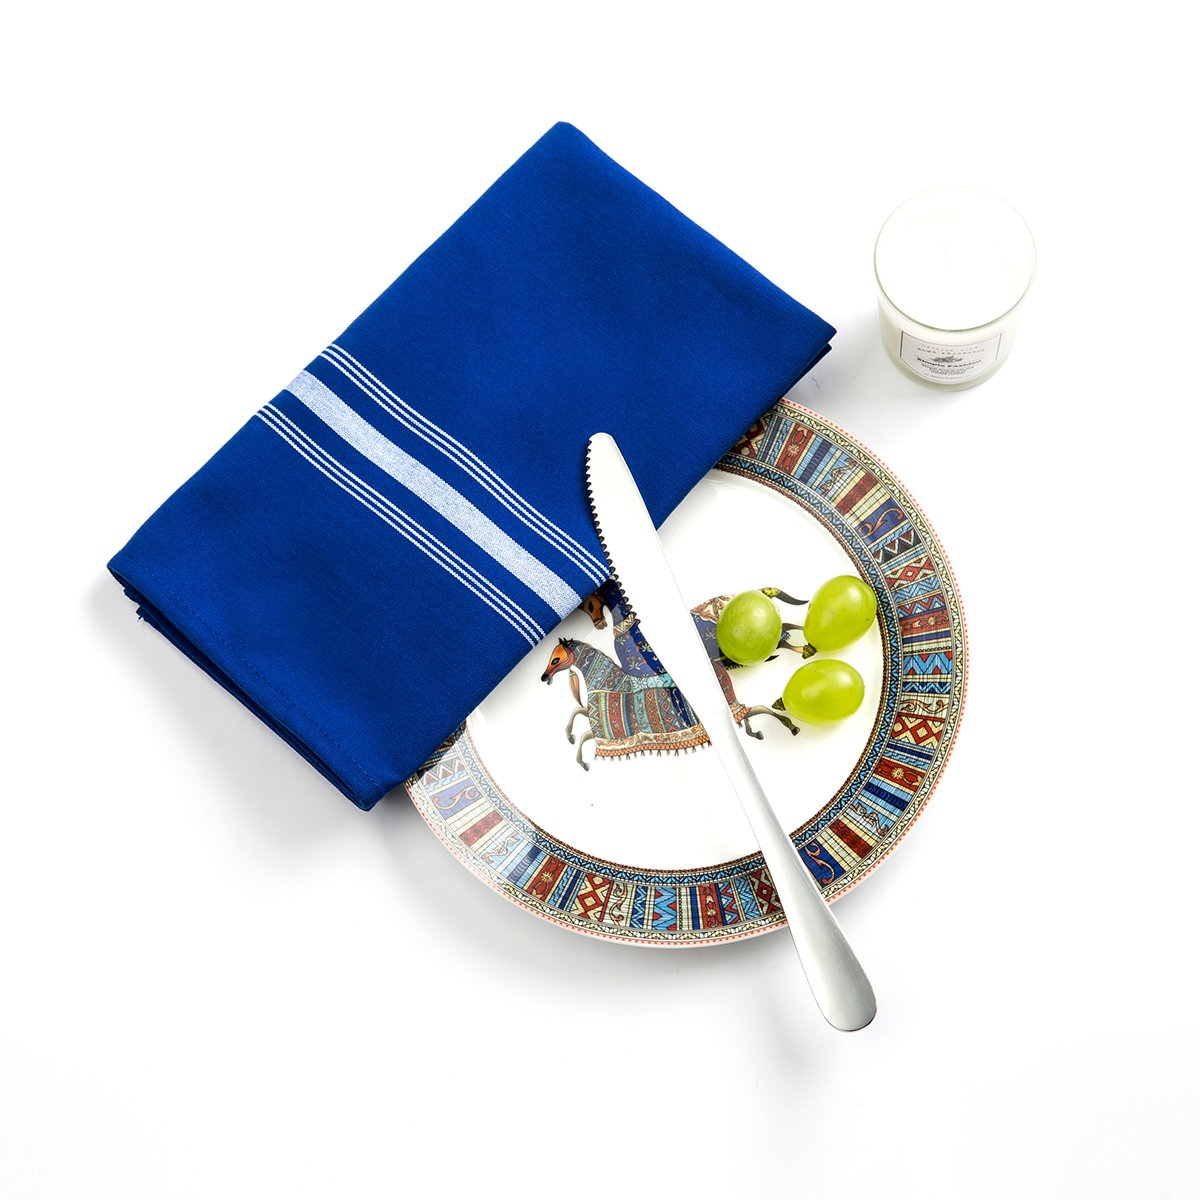 Beely Cloth Dinner Napkins - Set of 6 Pieces (18 x 22 inches),Five-Star Premium Dinner Napkins,Soft and Durable,Perfect for Parties,Weddings,Cocktail, Birthday or Everyday Use (Royal Blue)